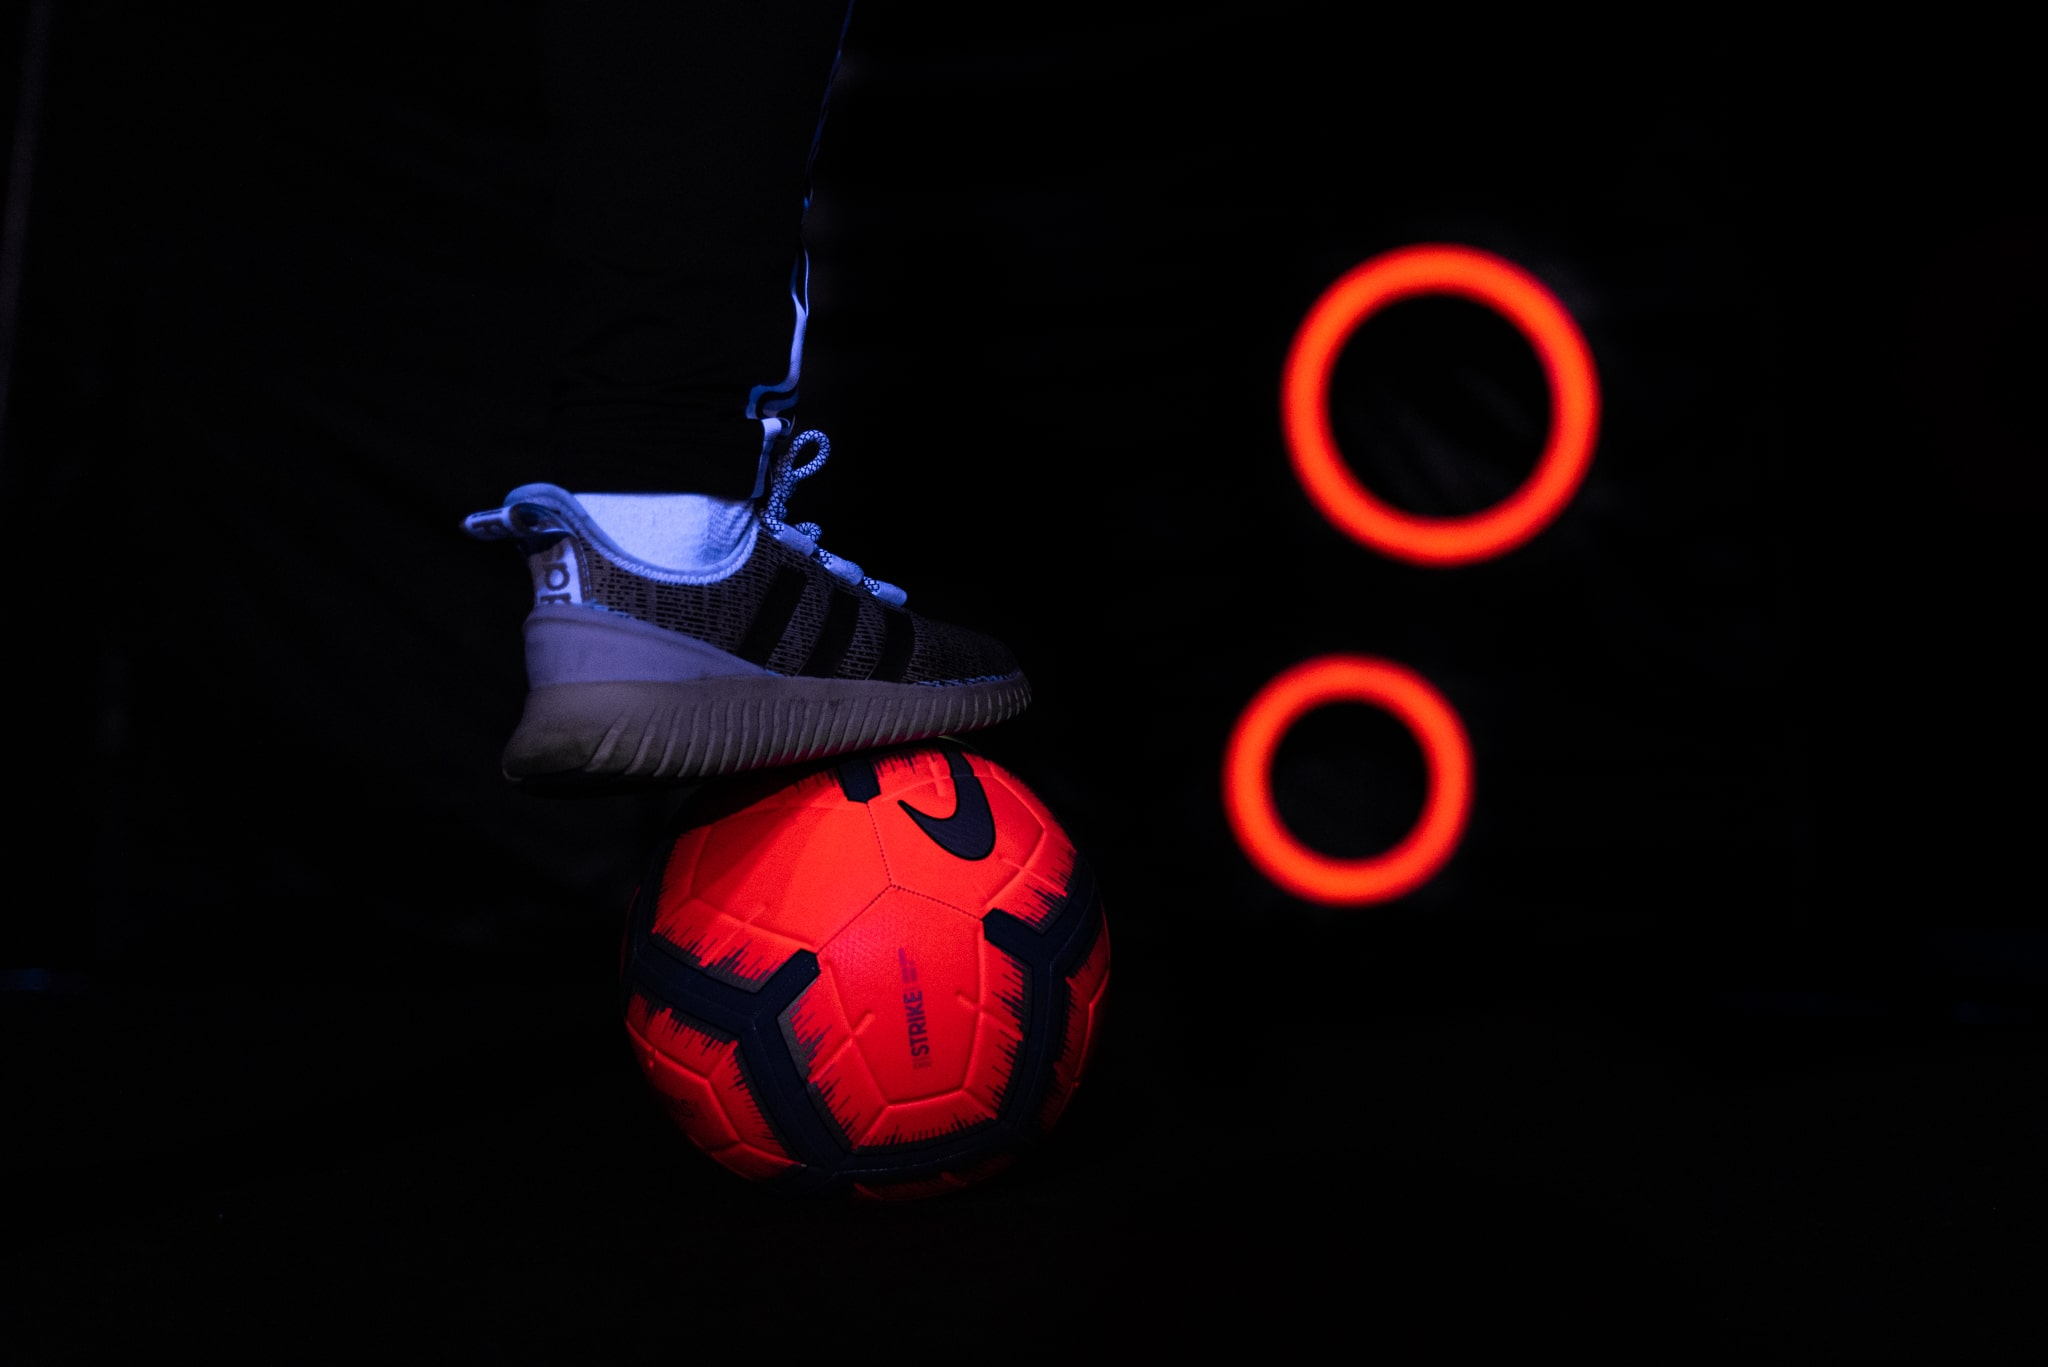 Football Boot with Red Circle Background